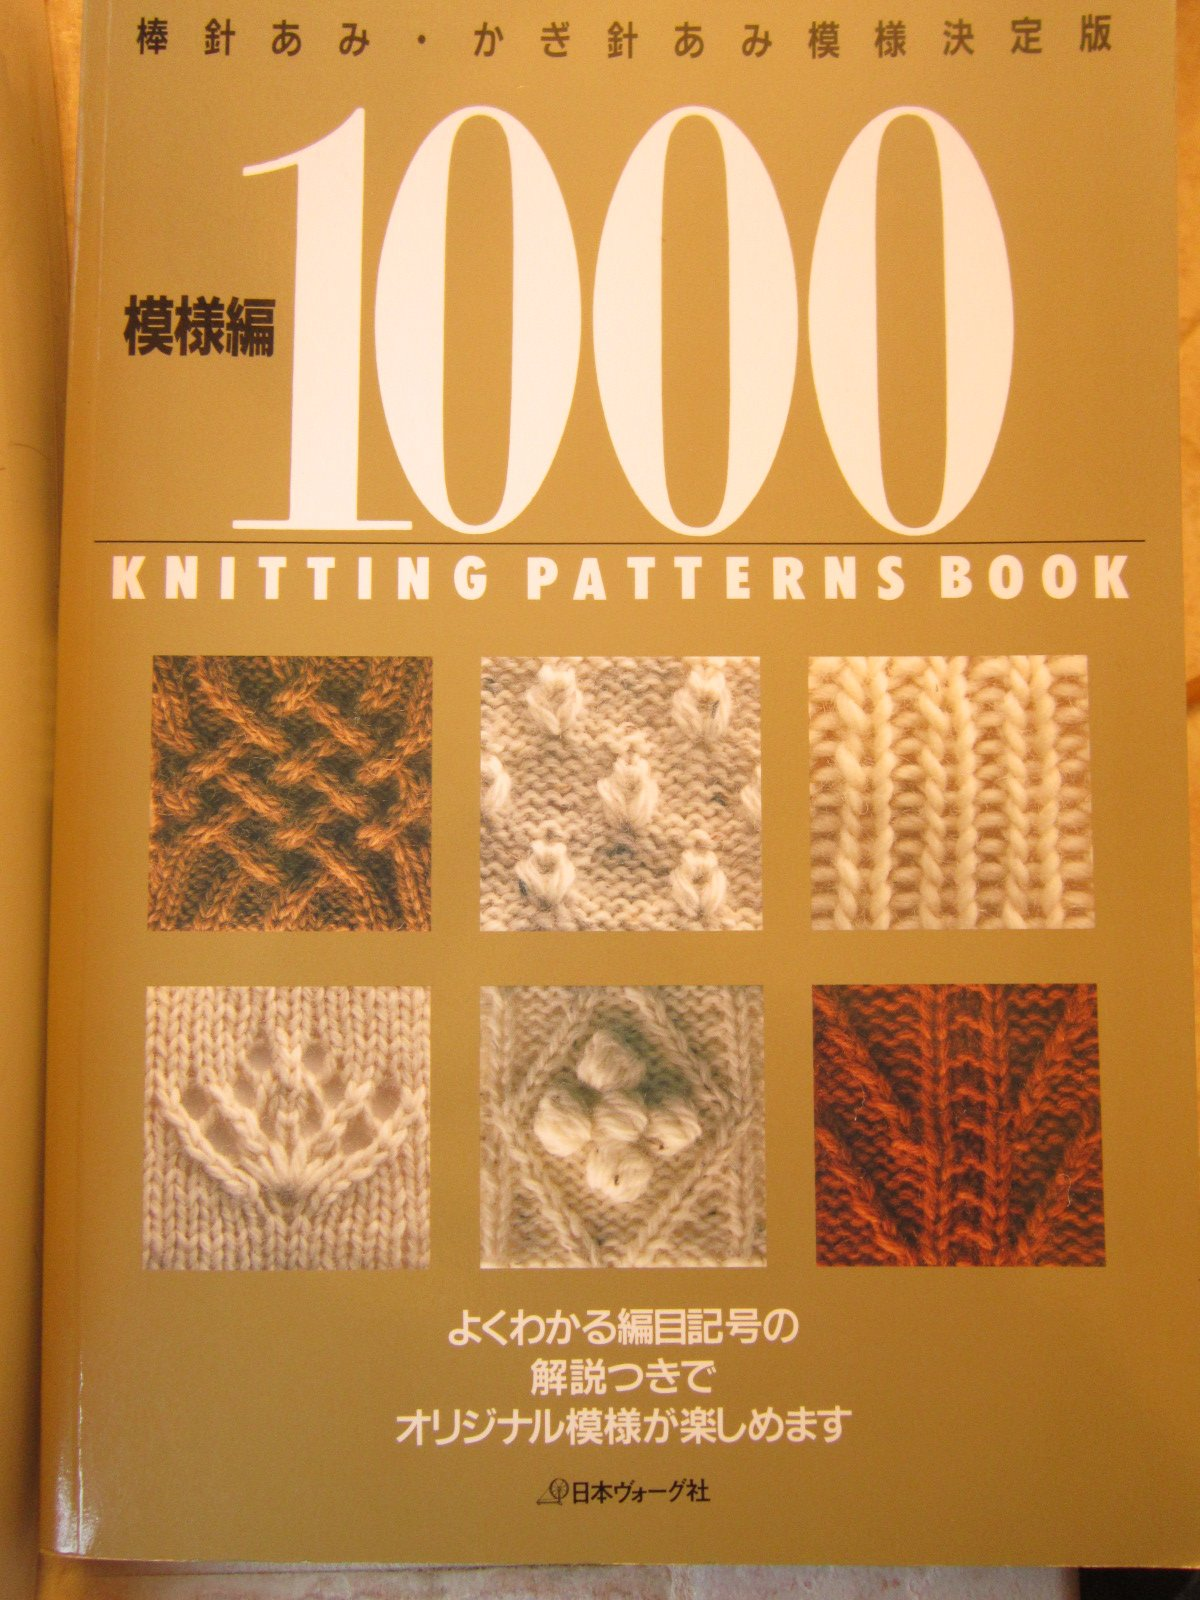 Japanese Craft Book 14251000 Knitting Patterns Book 700 Knit